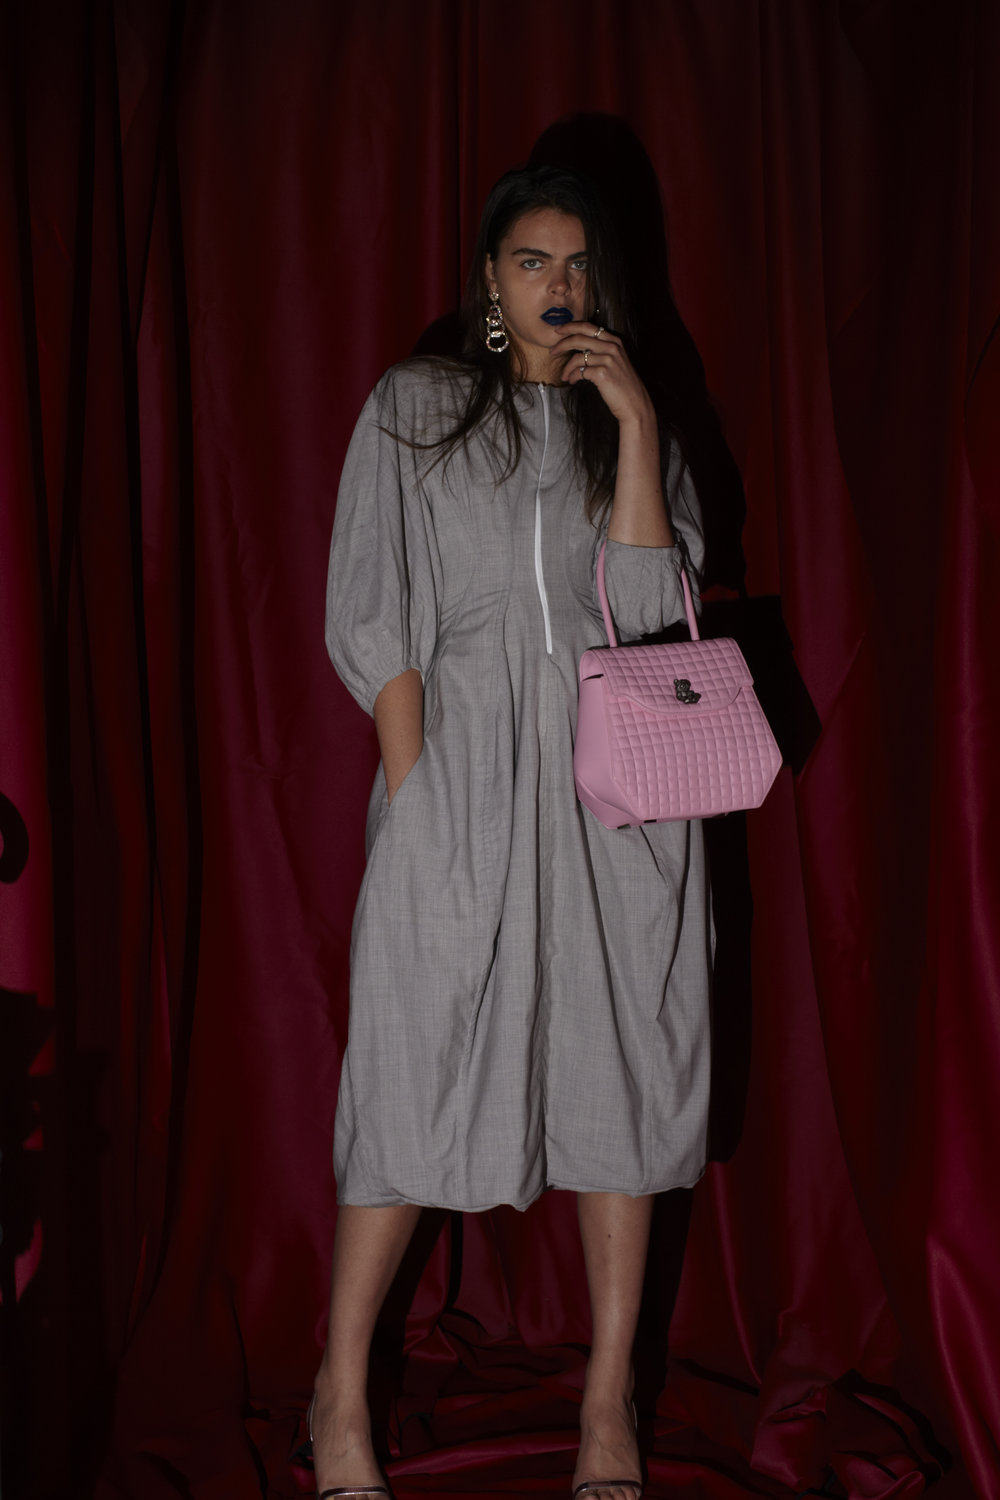 Bag PRAMMA Nr.1b, cotton dress Céline, sandals Saint Laurent, earrings stylist own.